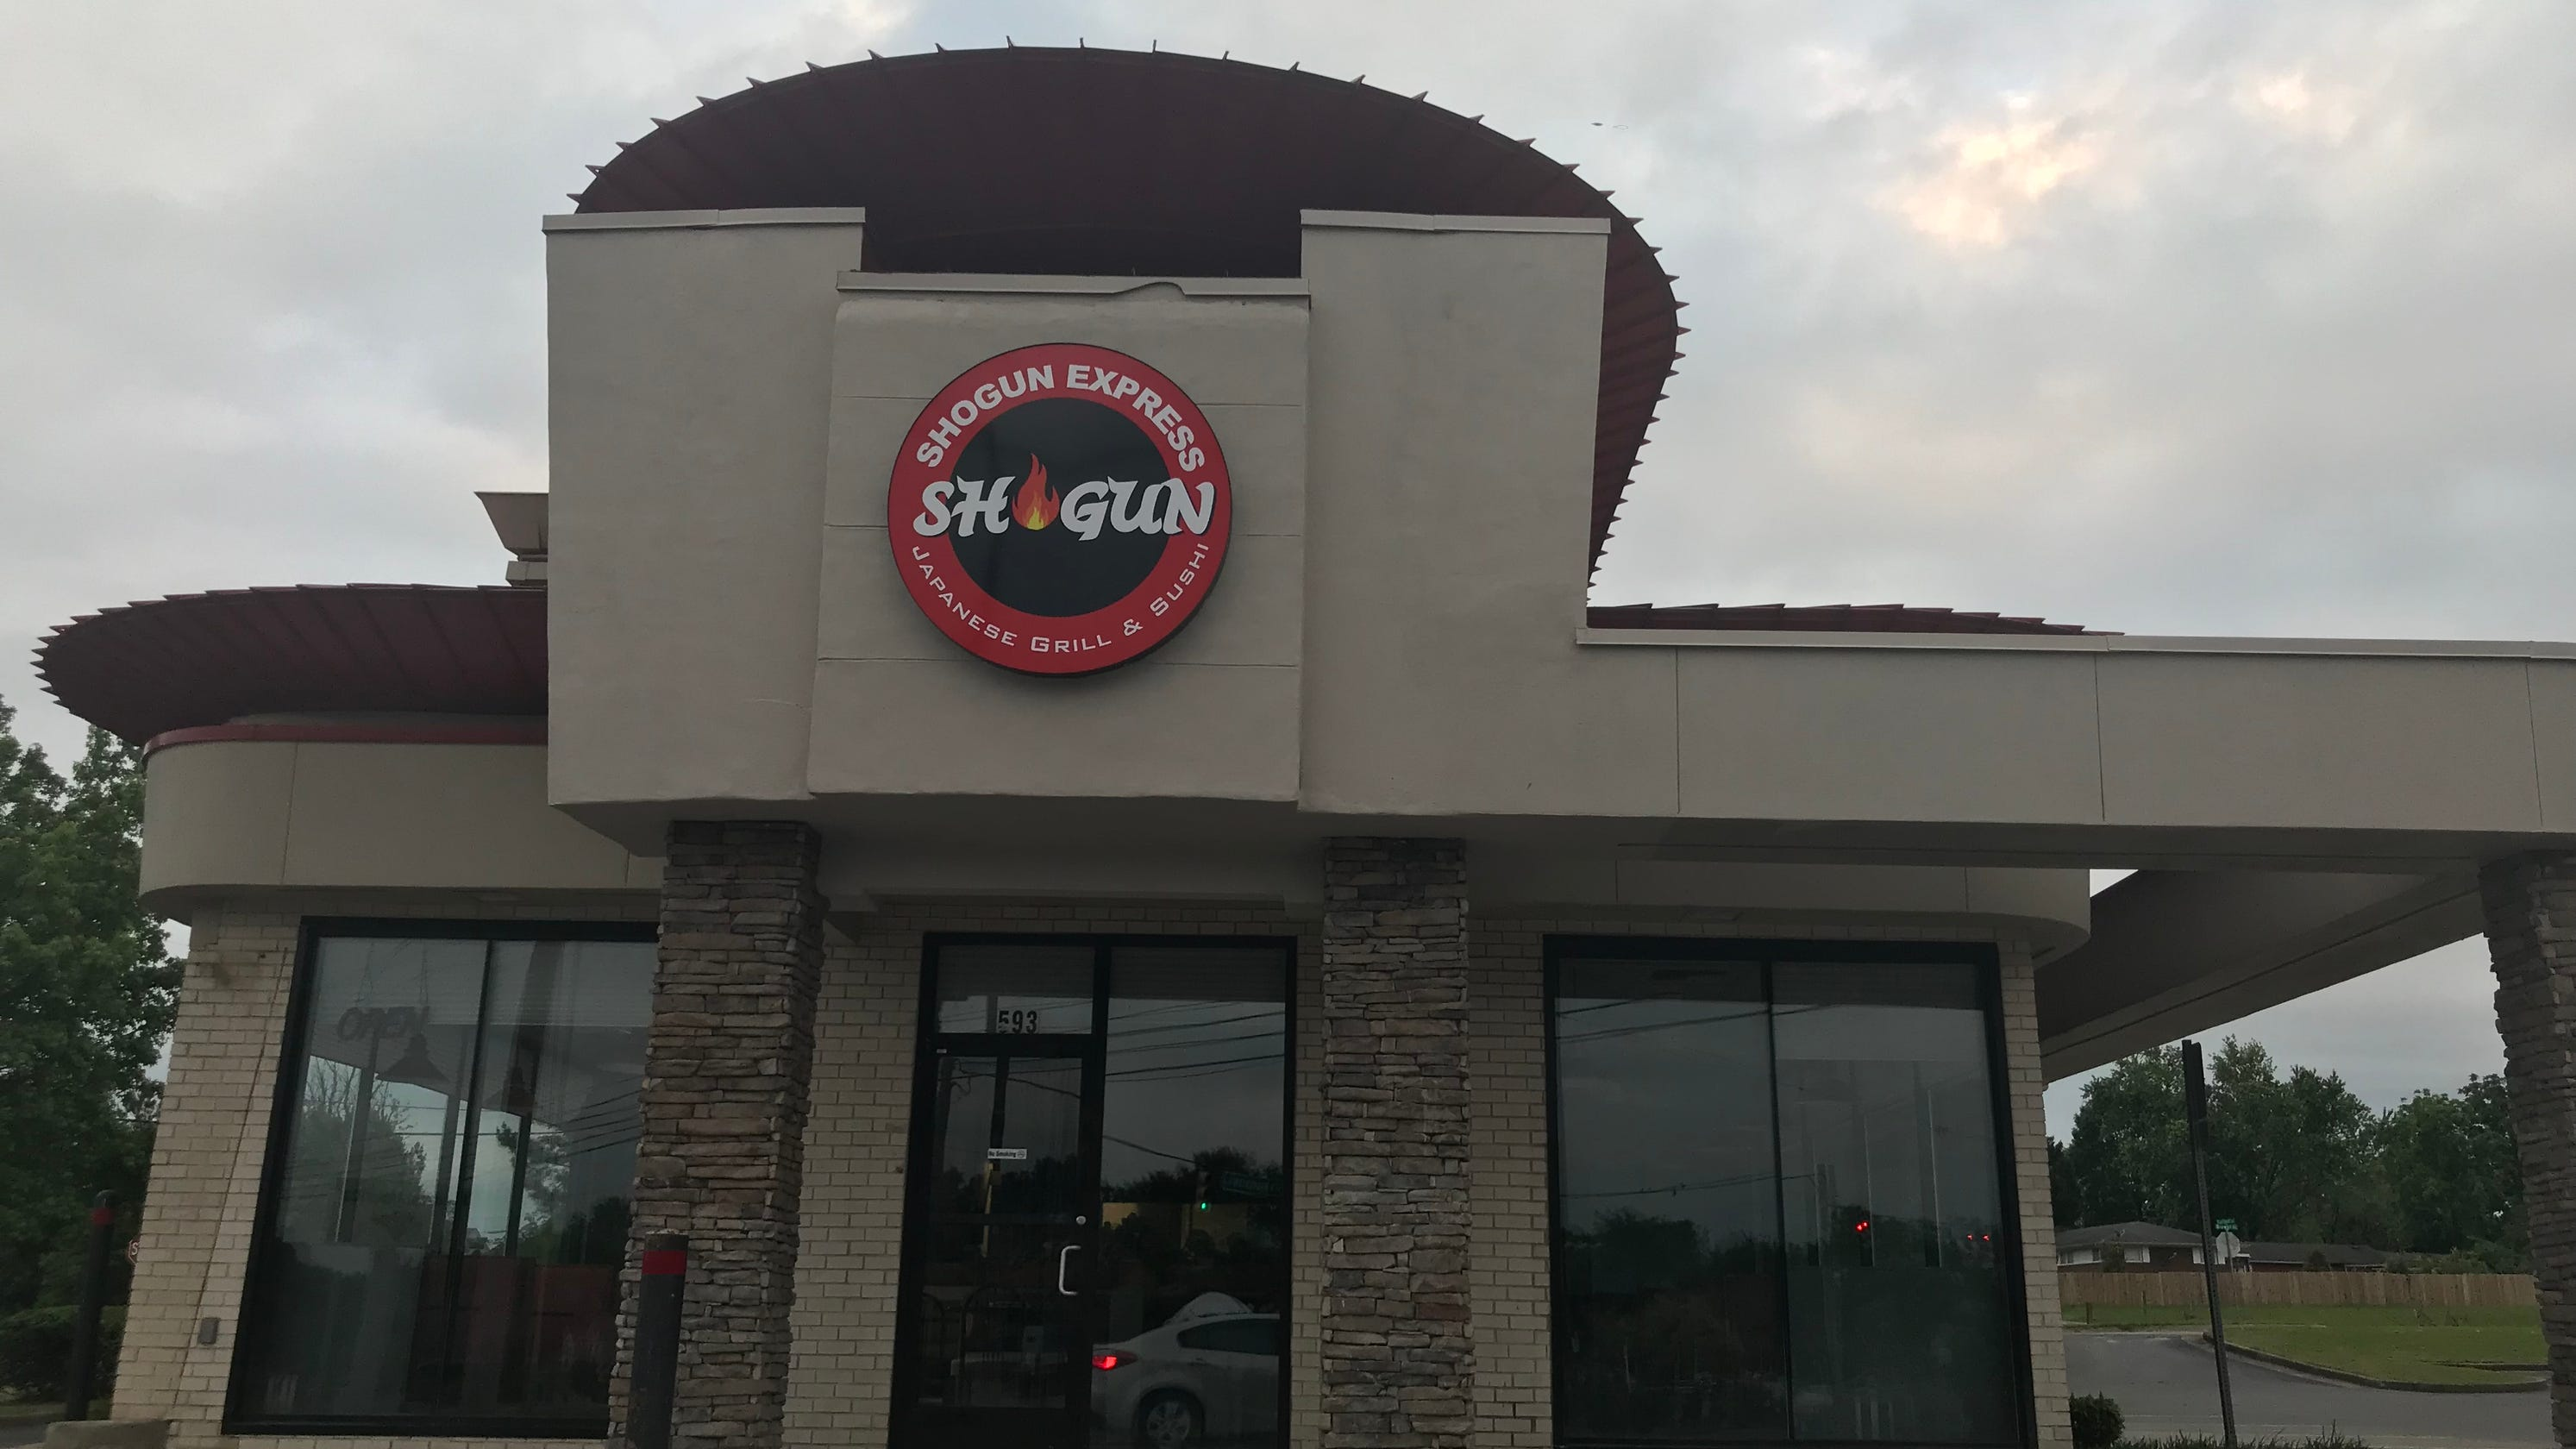 Shogun Express To Occupy Former Jack In The Box Smyrna